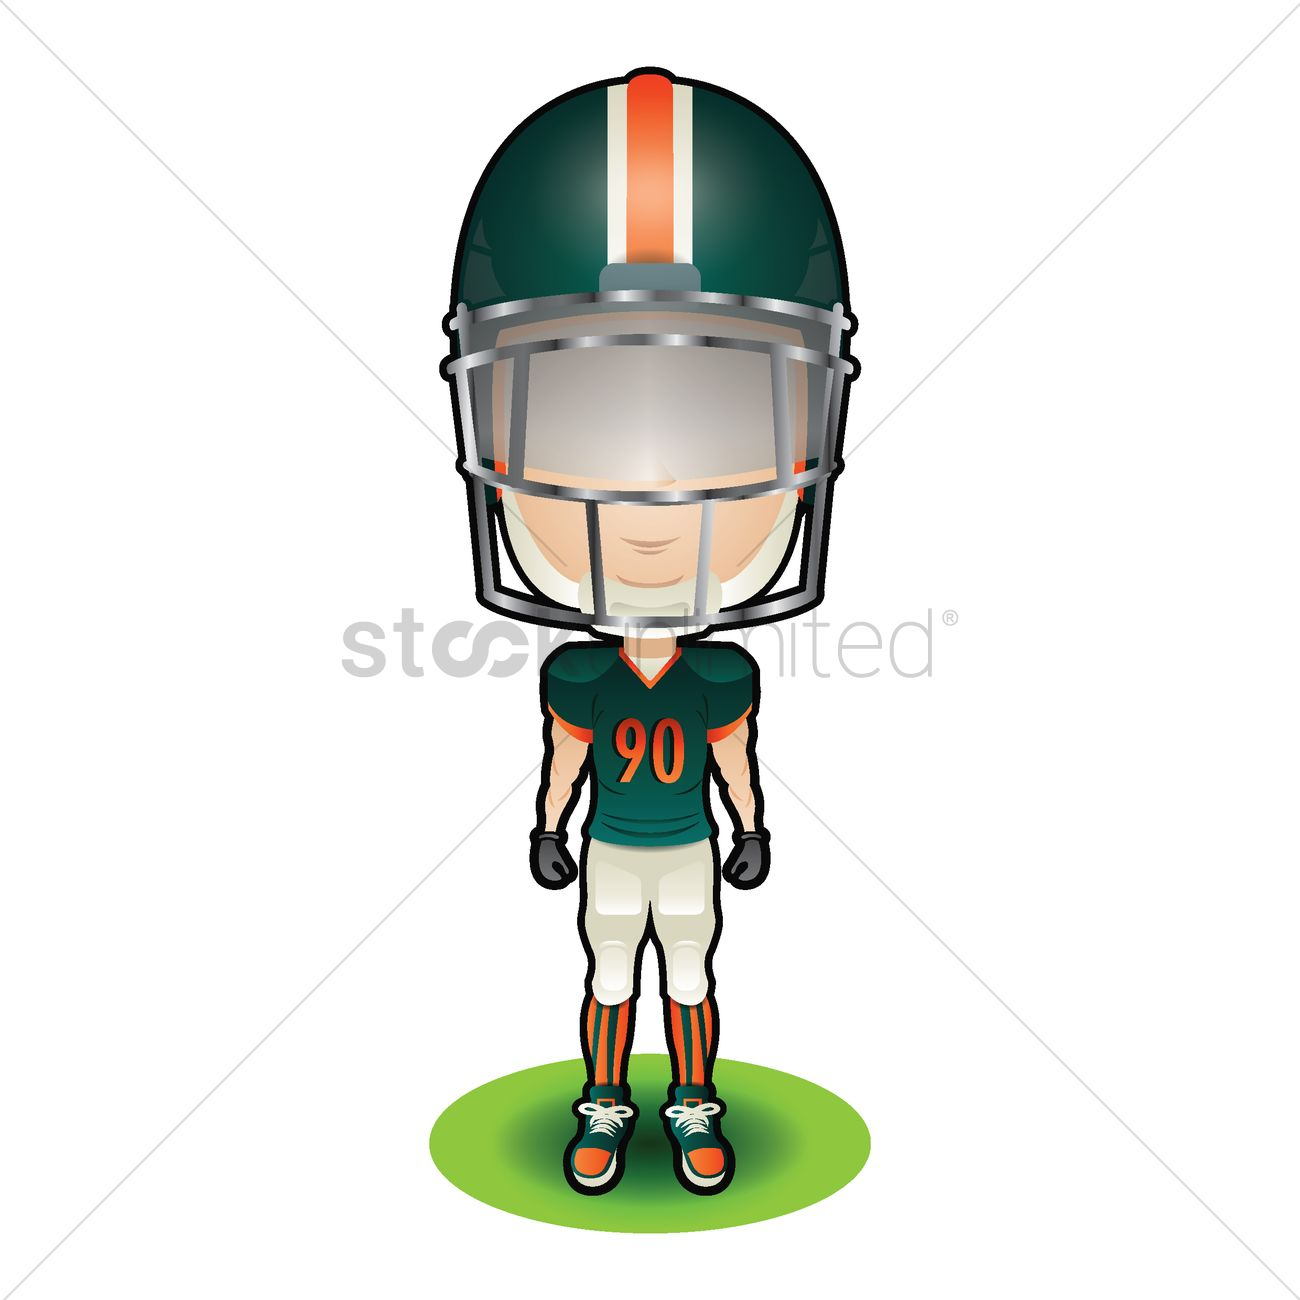 1300x1300 American Football Player In Green Uniform Vector Image